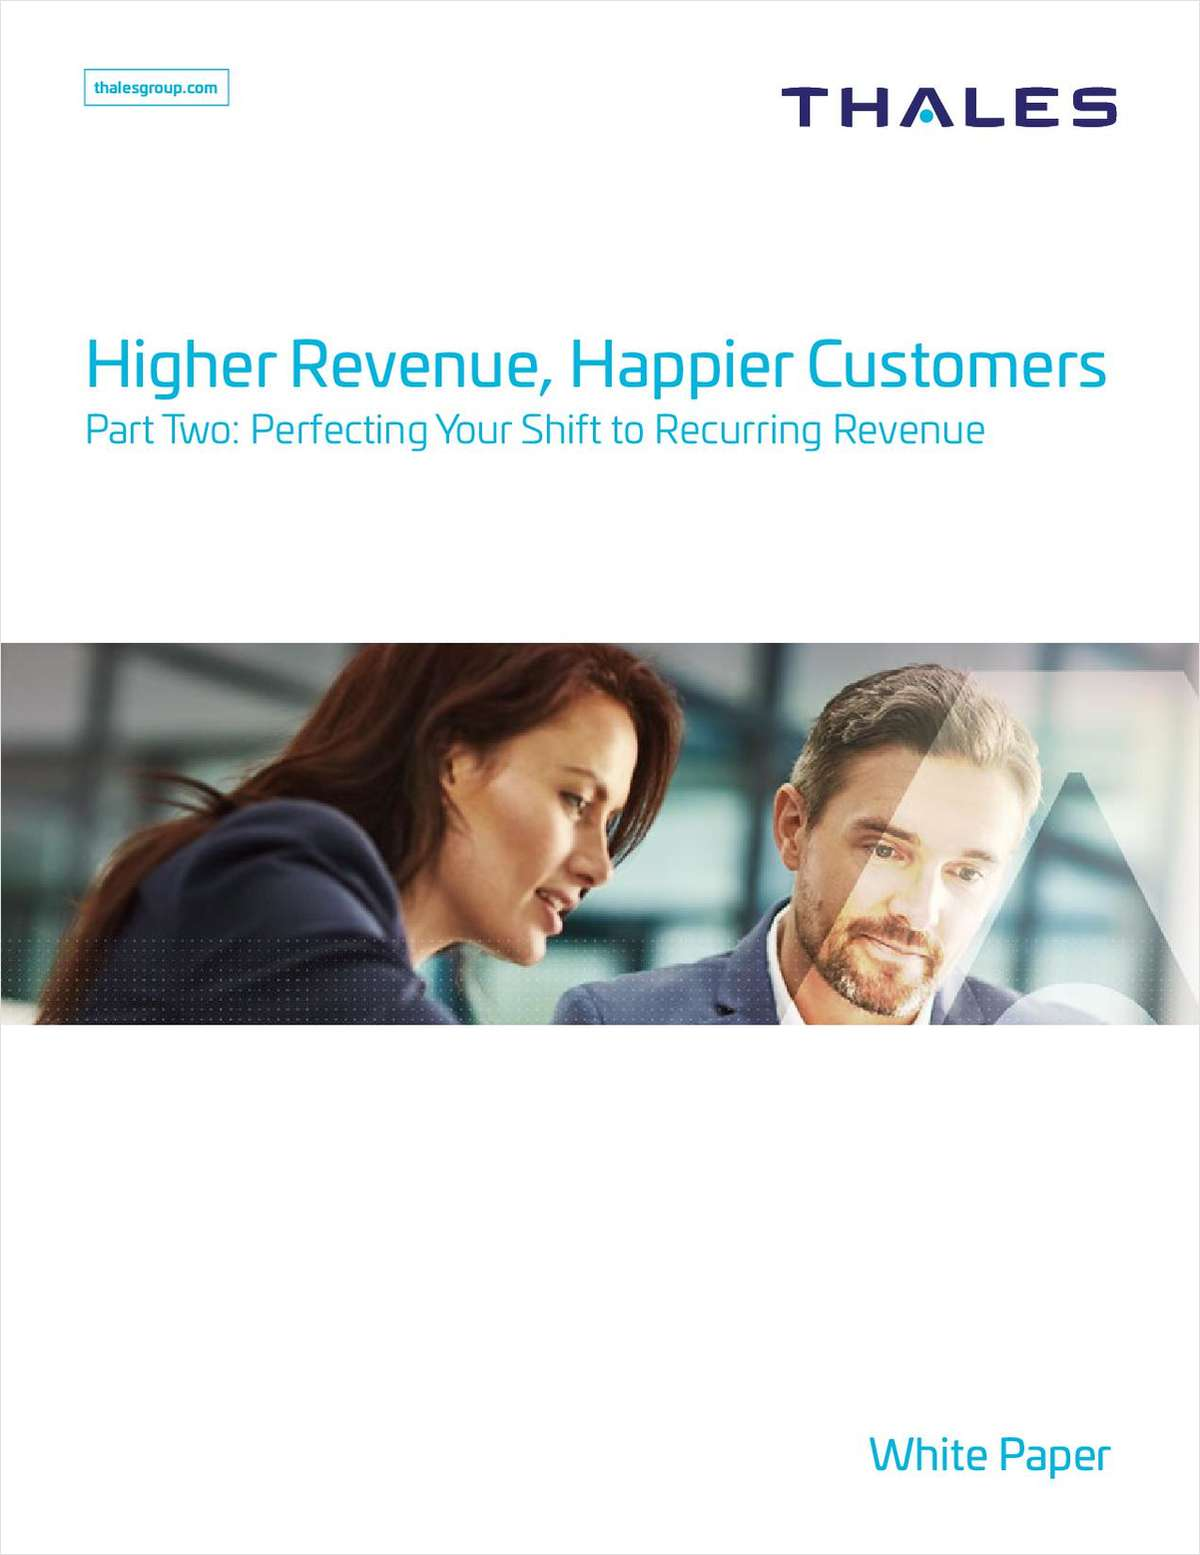 Develop Your Recurring Revenue Business Model Strategy -  White Paper